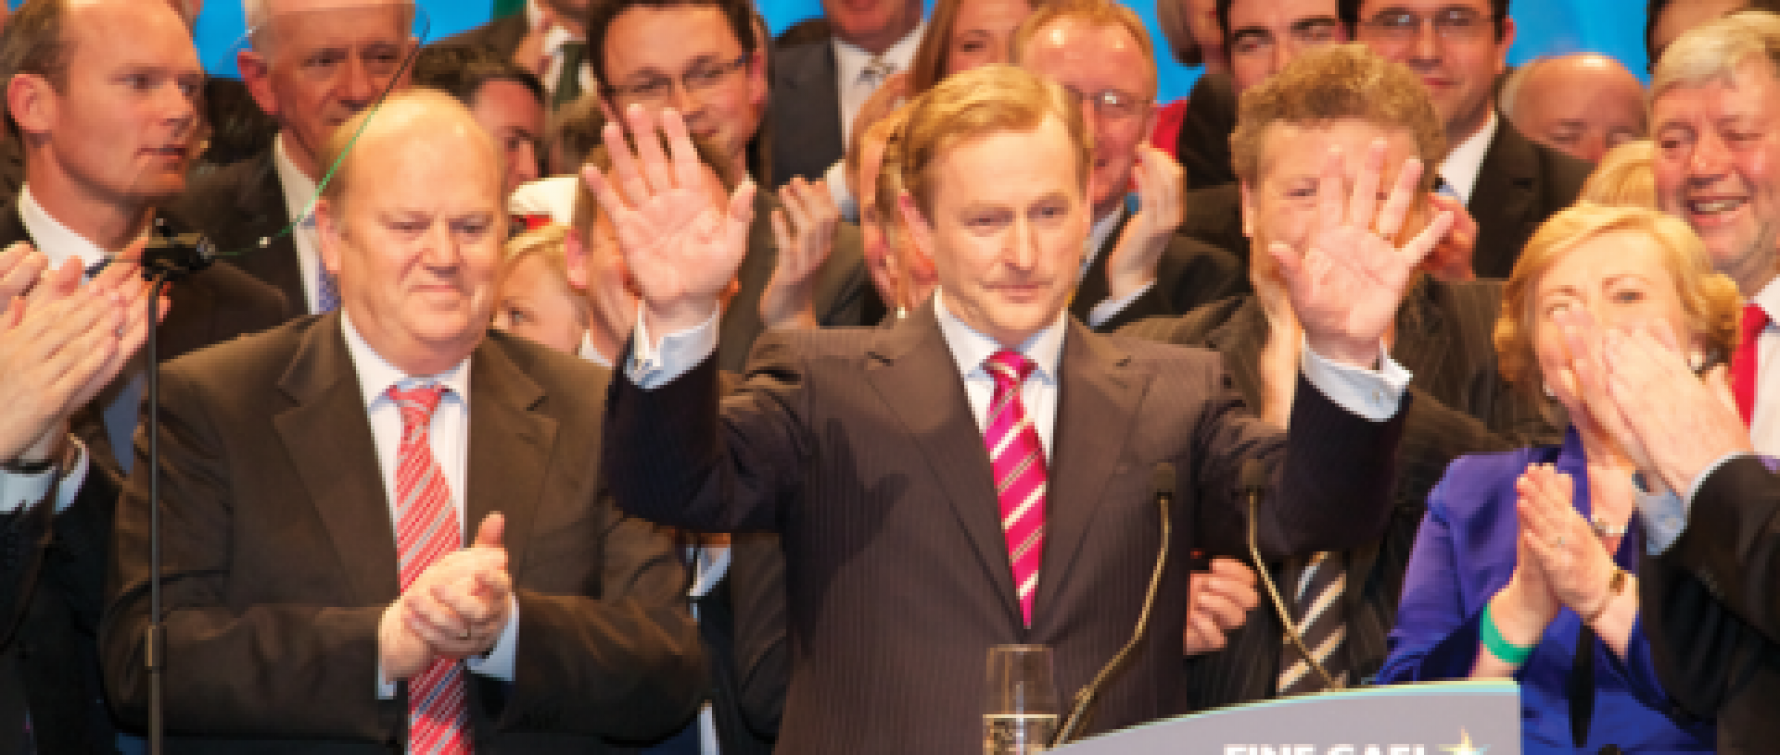 Ireland: The IDC welcomes the Fine Gael on his historic victory